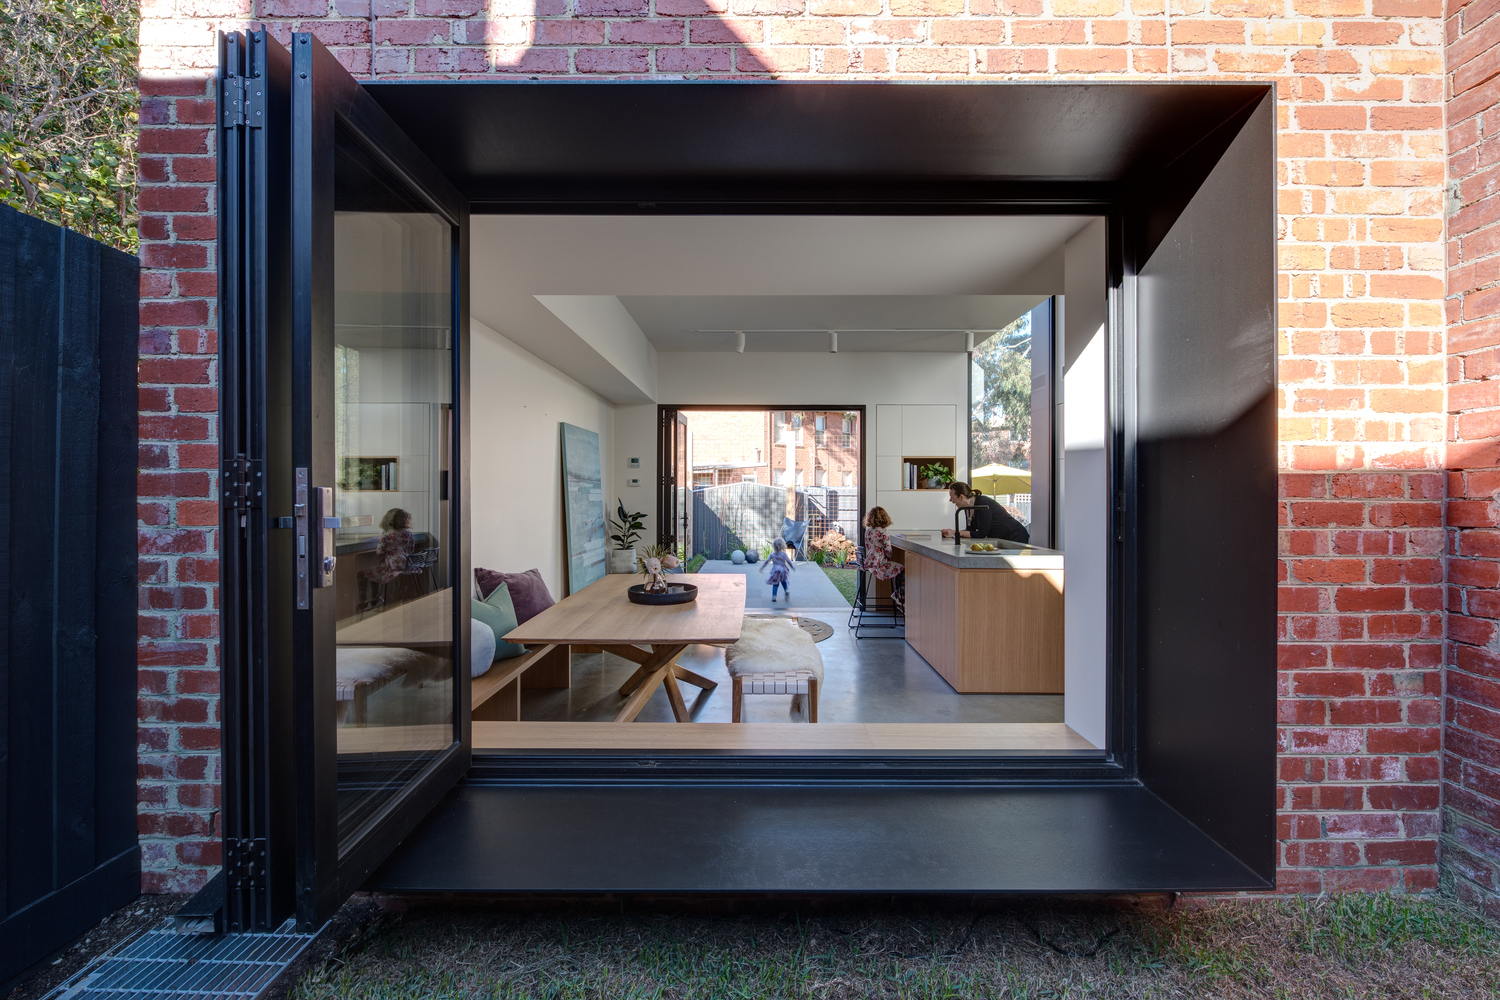 This Extension Is Arranged Like a Game of Tetris to Maximise Space